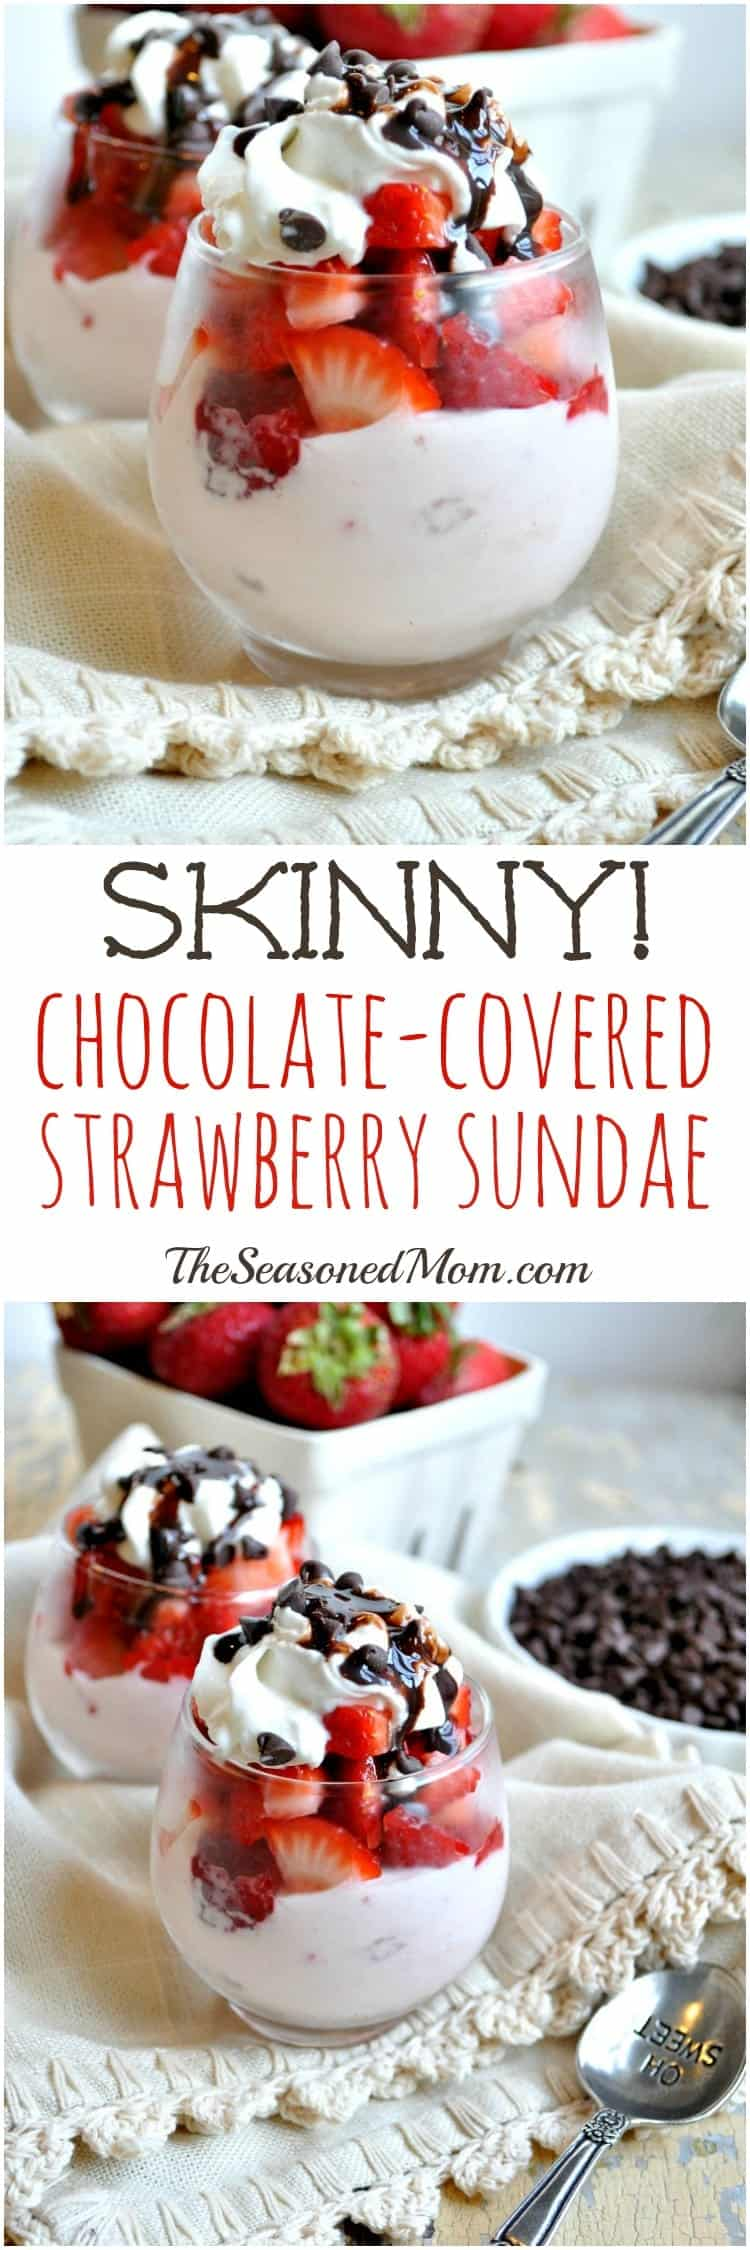 Skinny Chocolate Covered Strawberry Sundae